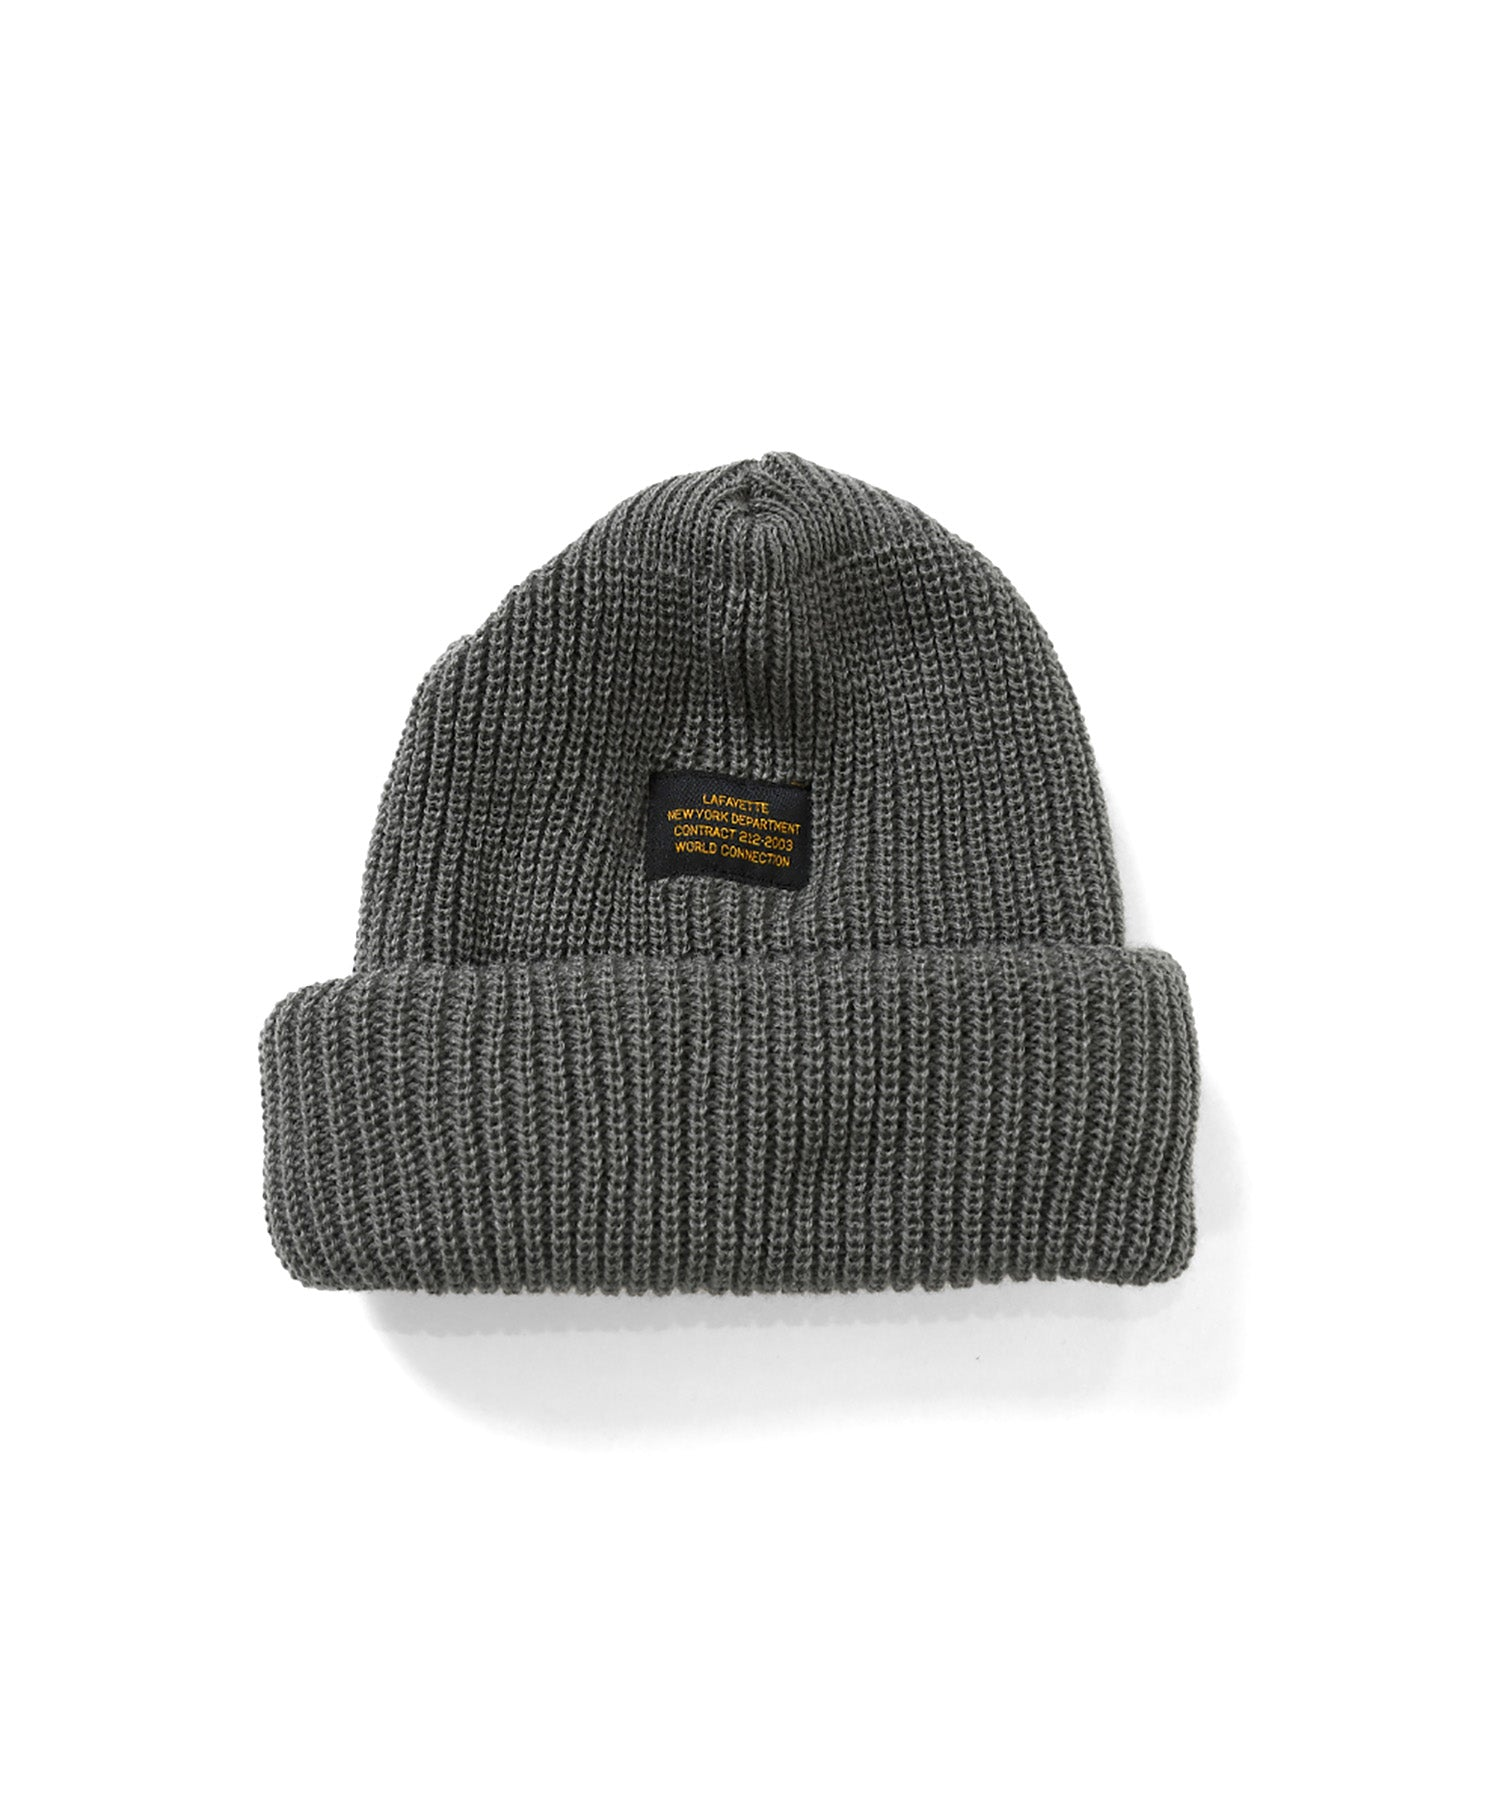 MILITARY LABEL BEANIE GRAY LA201409